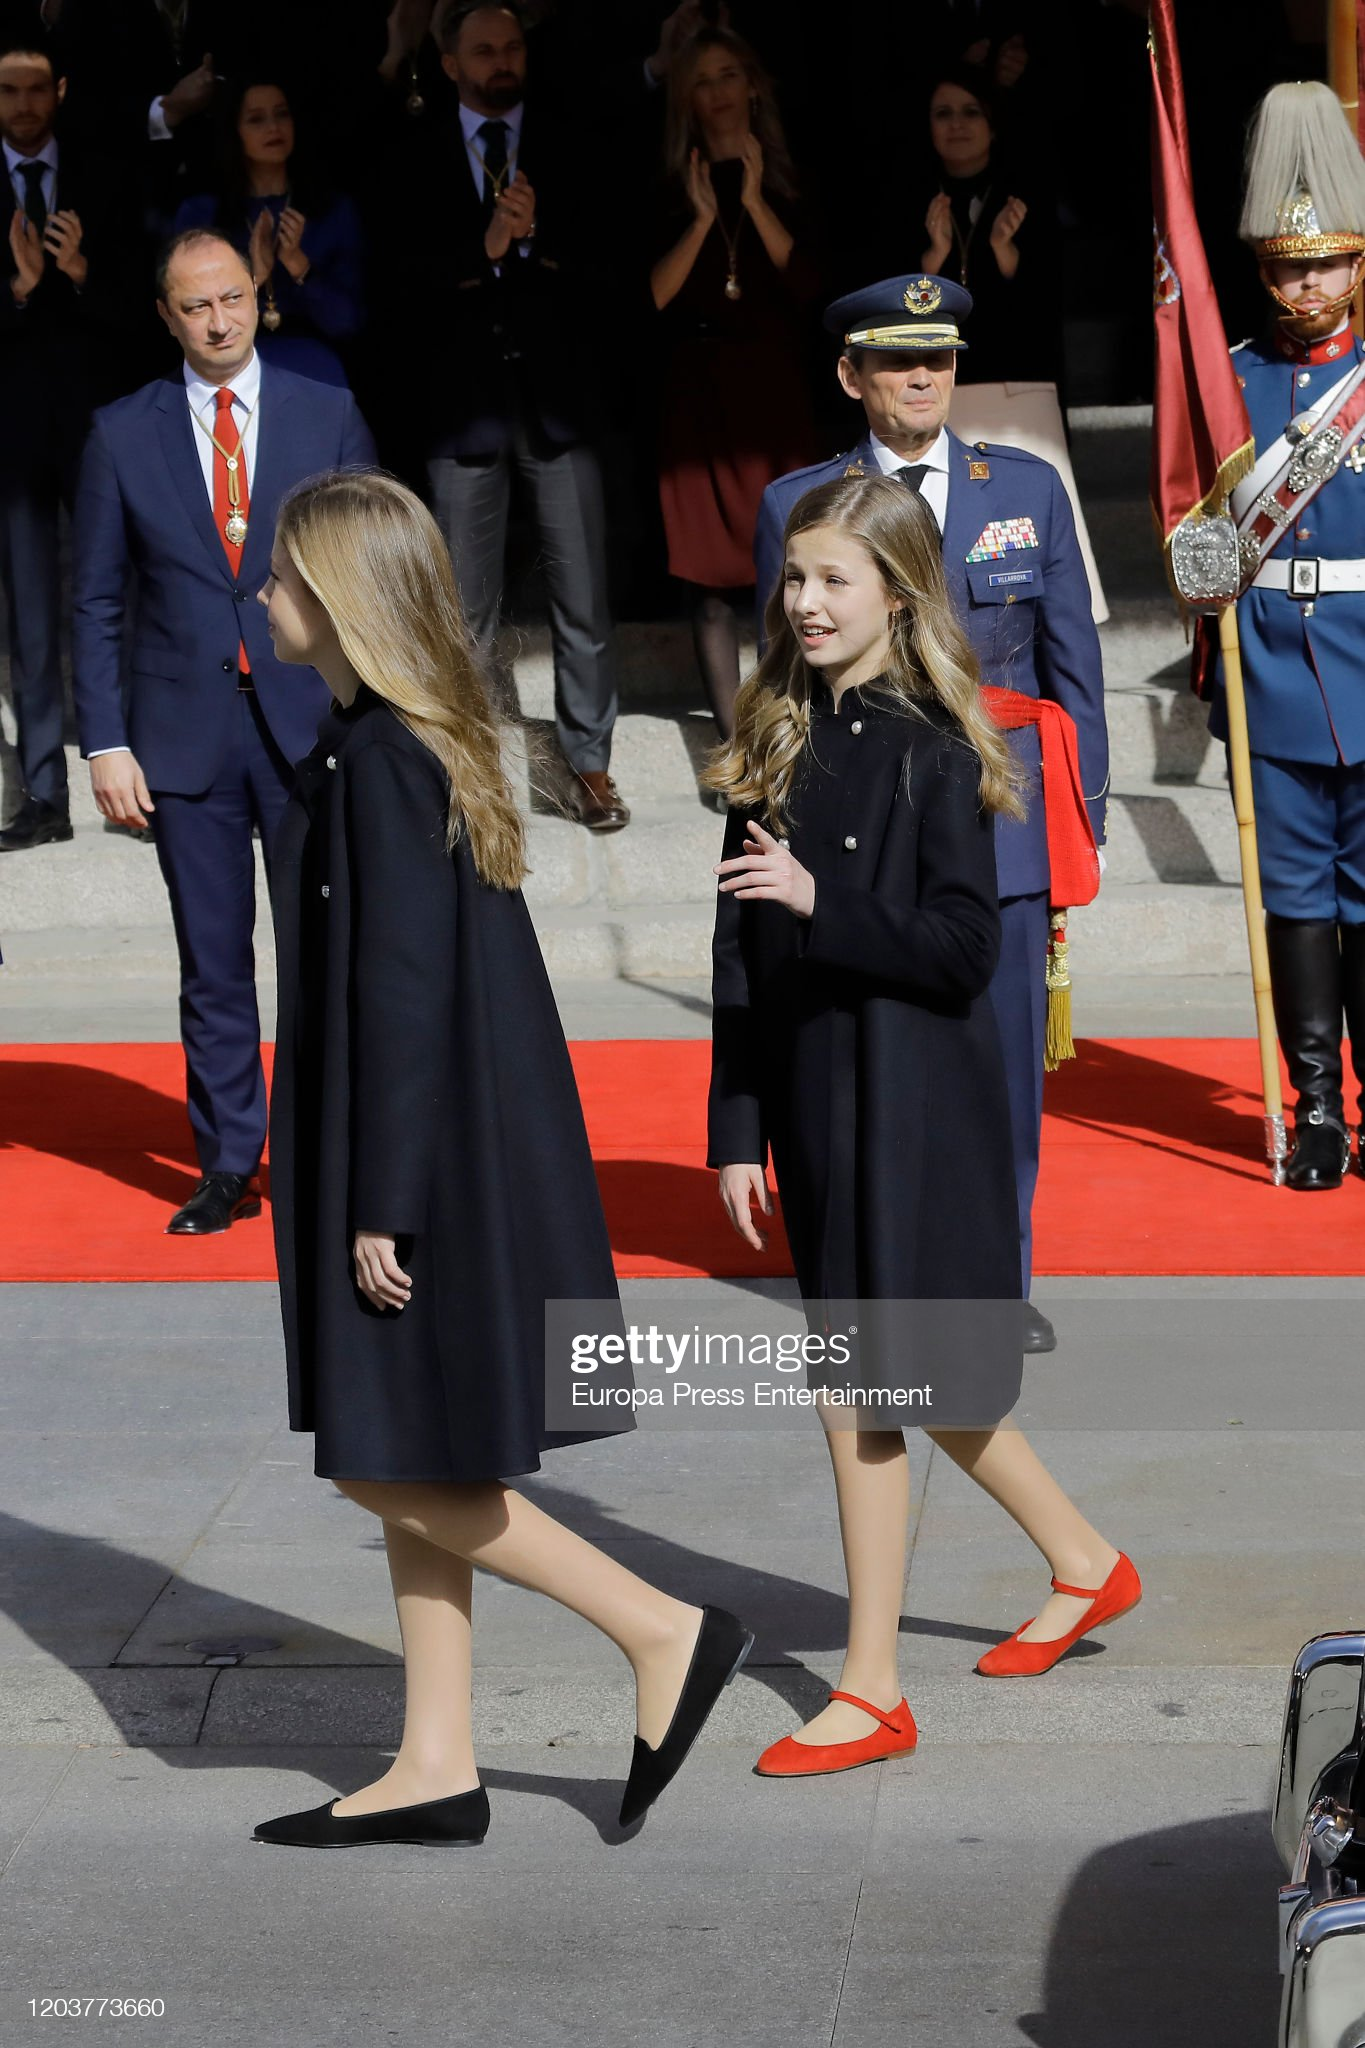 https://media.gettyimages.com/photos/princess-sofia-of-spain-and-princess-leonor-of-spain-attend-the-of-picture-id1203773660?s=2048x2048